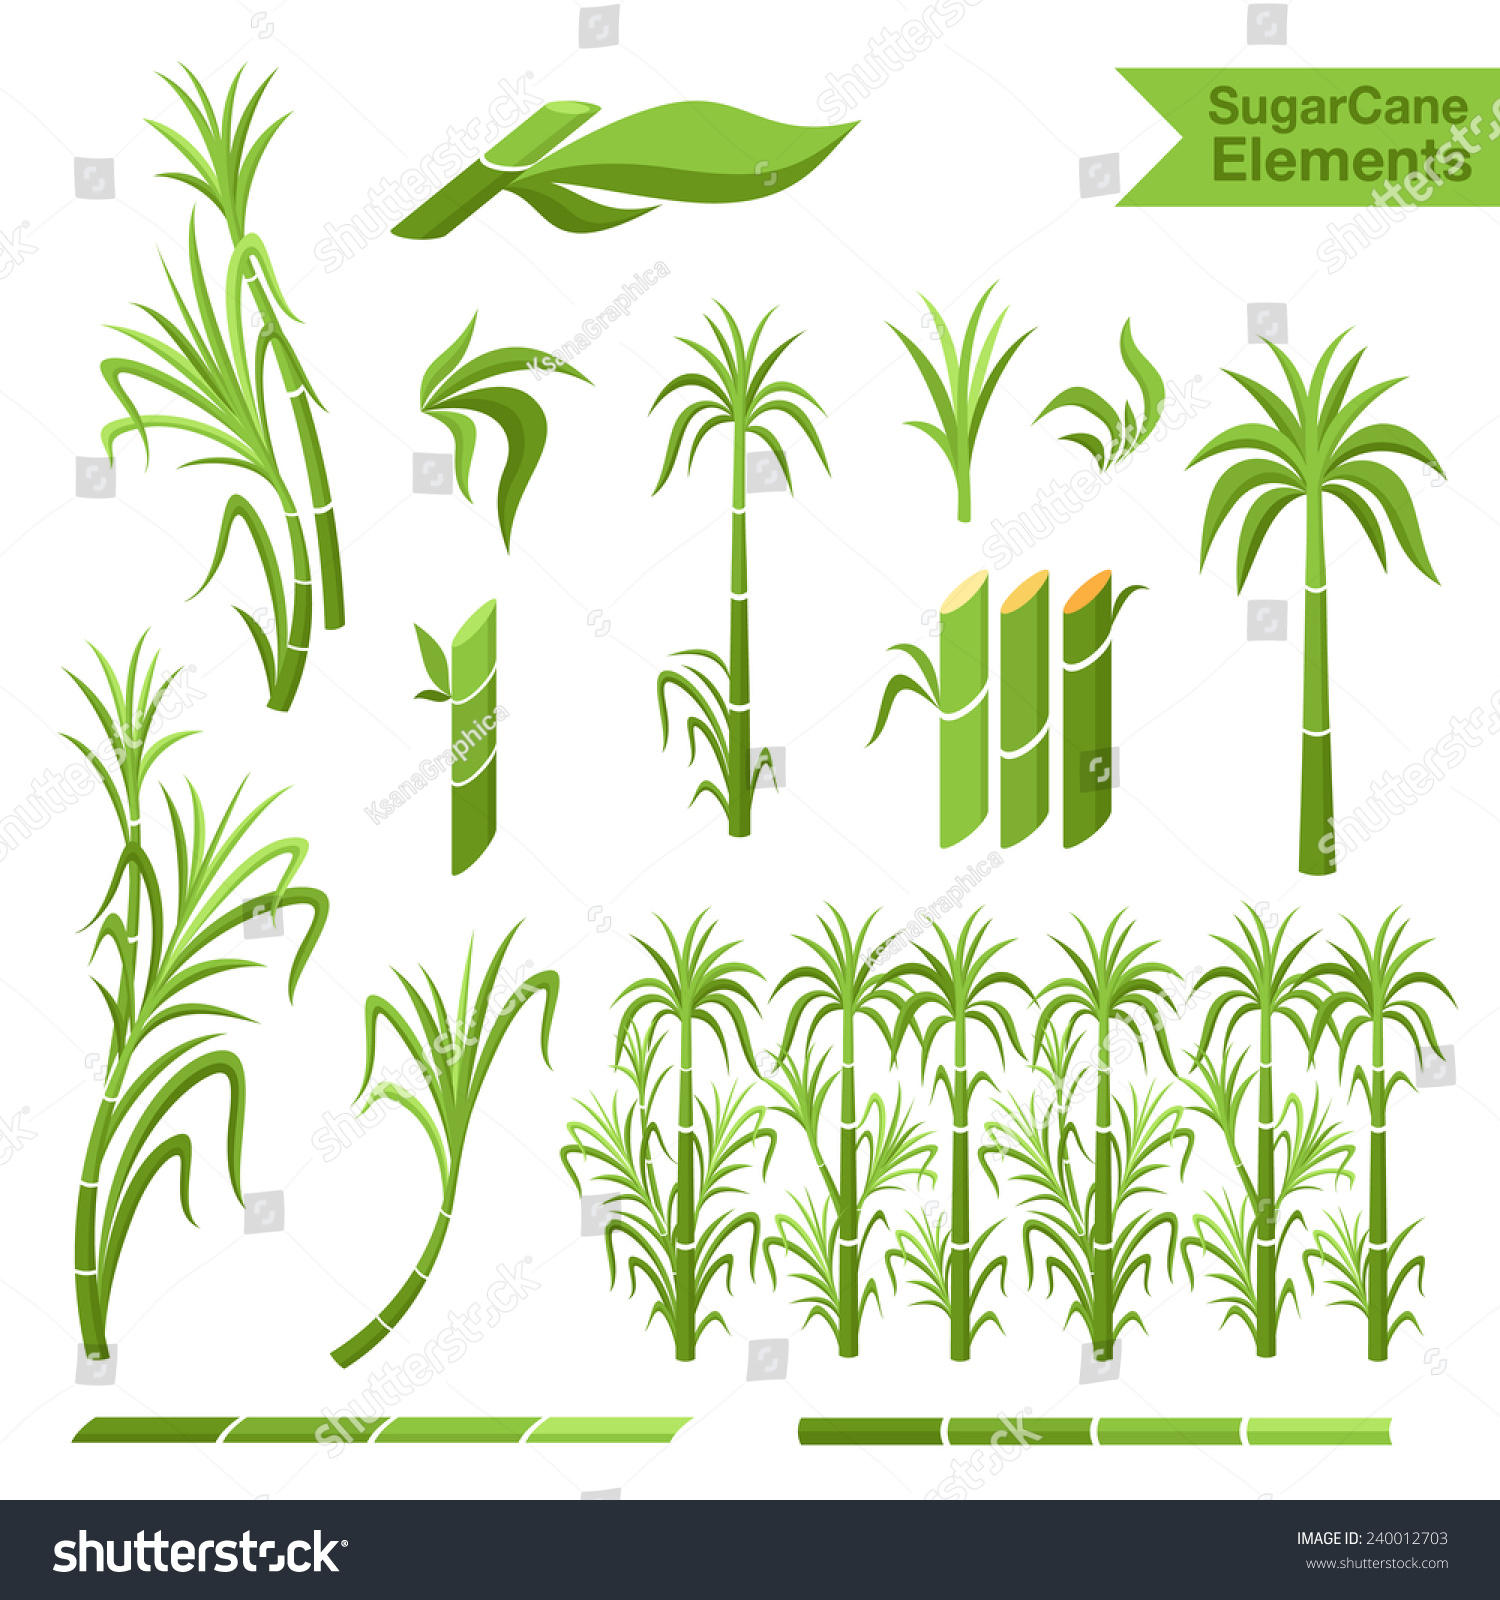 sugar cane decoration borders steams leaves stock vector 240012703 shutterstock. Black Bedroom Furniture Sets. Home Design Ideas